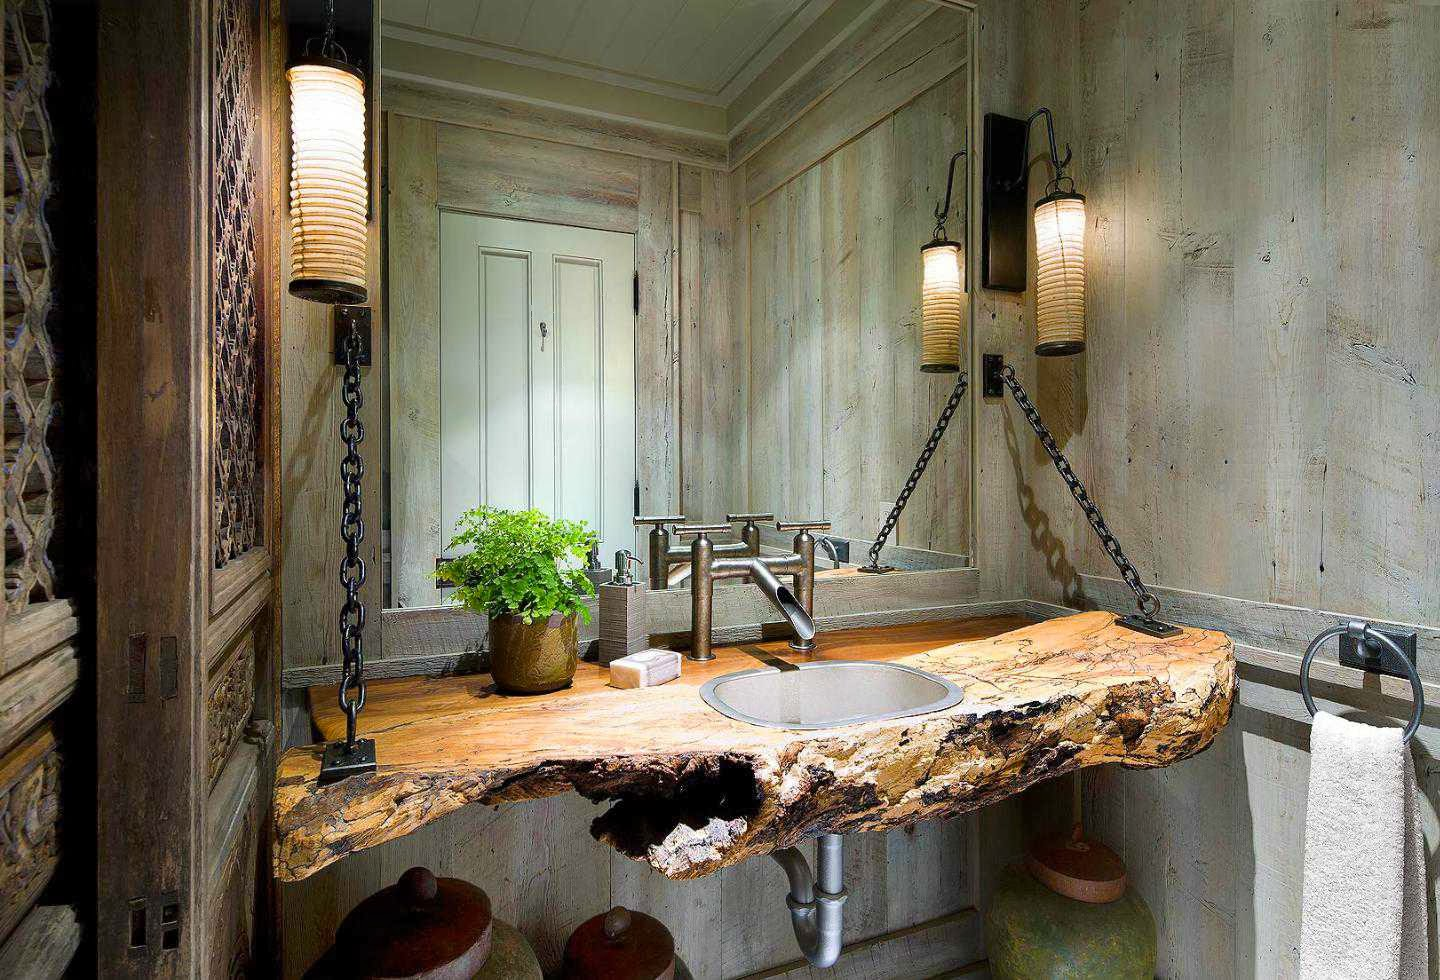 Best Kitchen Gallery: Western Bathroom Ideas Large And Beautiful Photos Photo To Select of Western Bathroom Designs  on rachelxblog.com